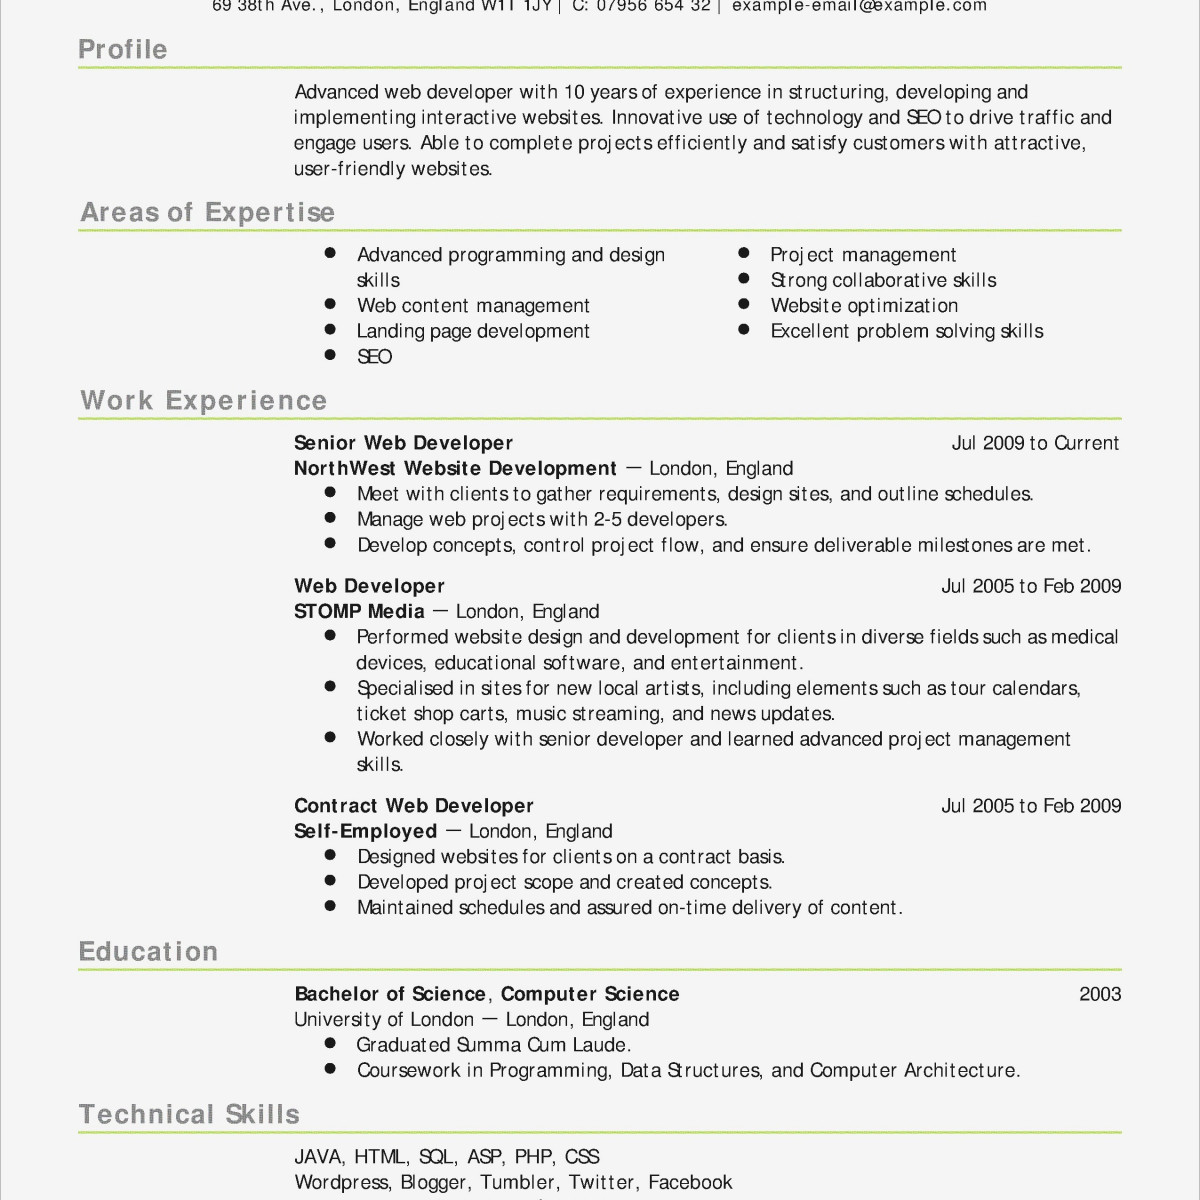 myperfectresume cost example-How to Cancel My Perfect Resume Subscription Elegant My Perfect Resume Cost New Best Examples Resumes 19-d